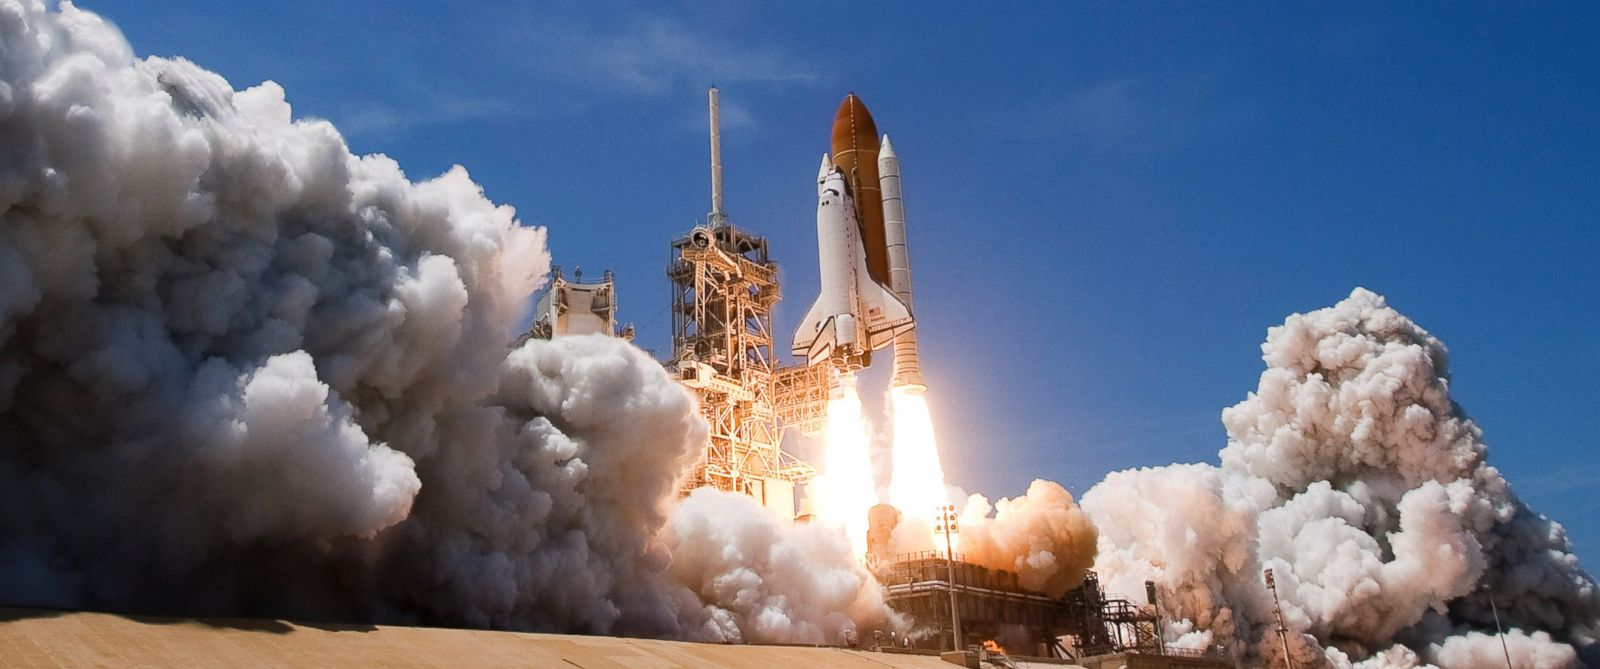 PHOTO: Space Shuttle Atlantis lifts off of launch pad 39-a at Kennedy Space Center for its final scheduled launch on May 14, 2010, in Cape Canaveral, Florida.